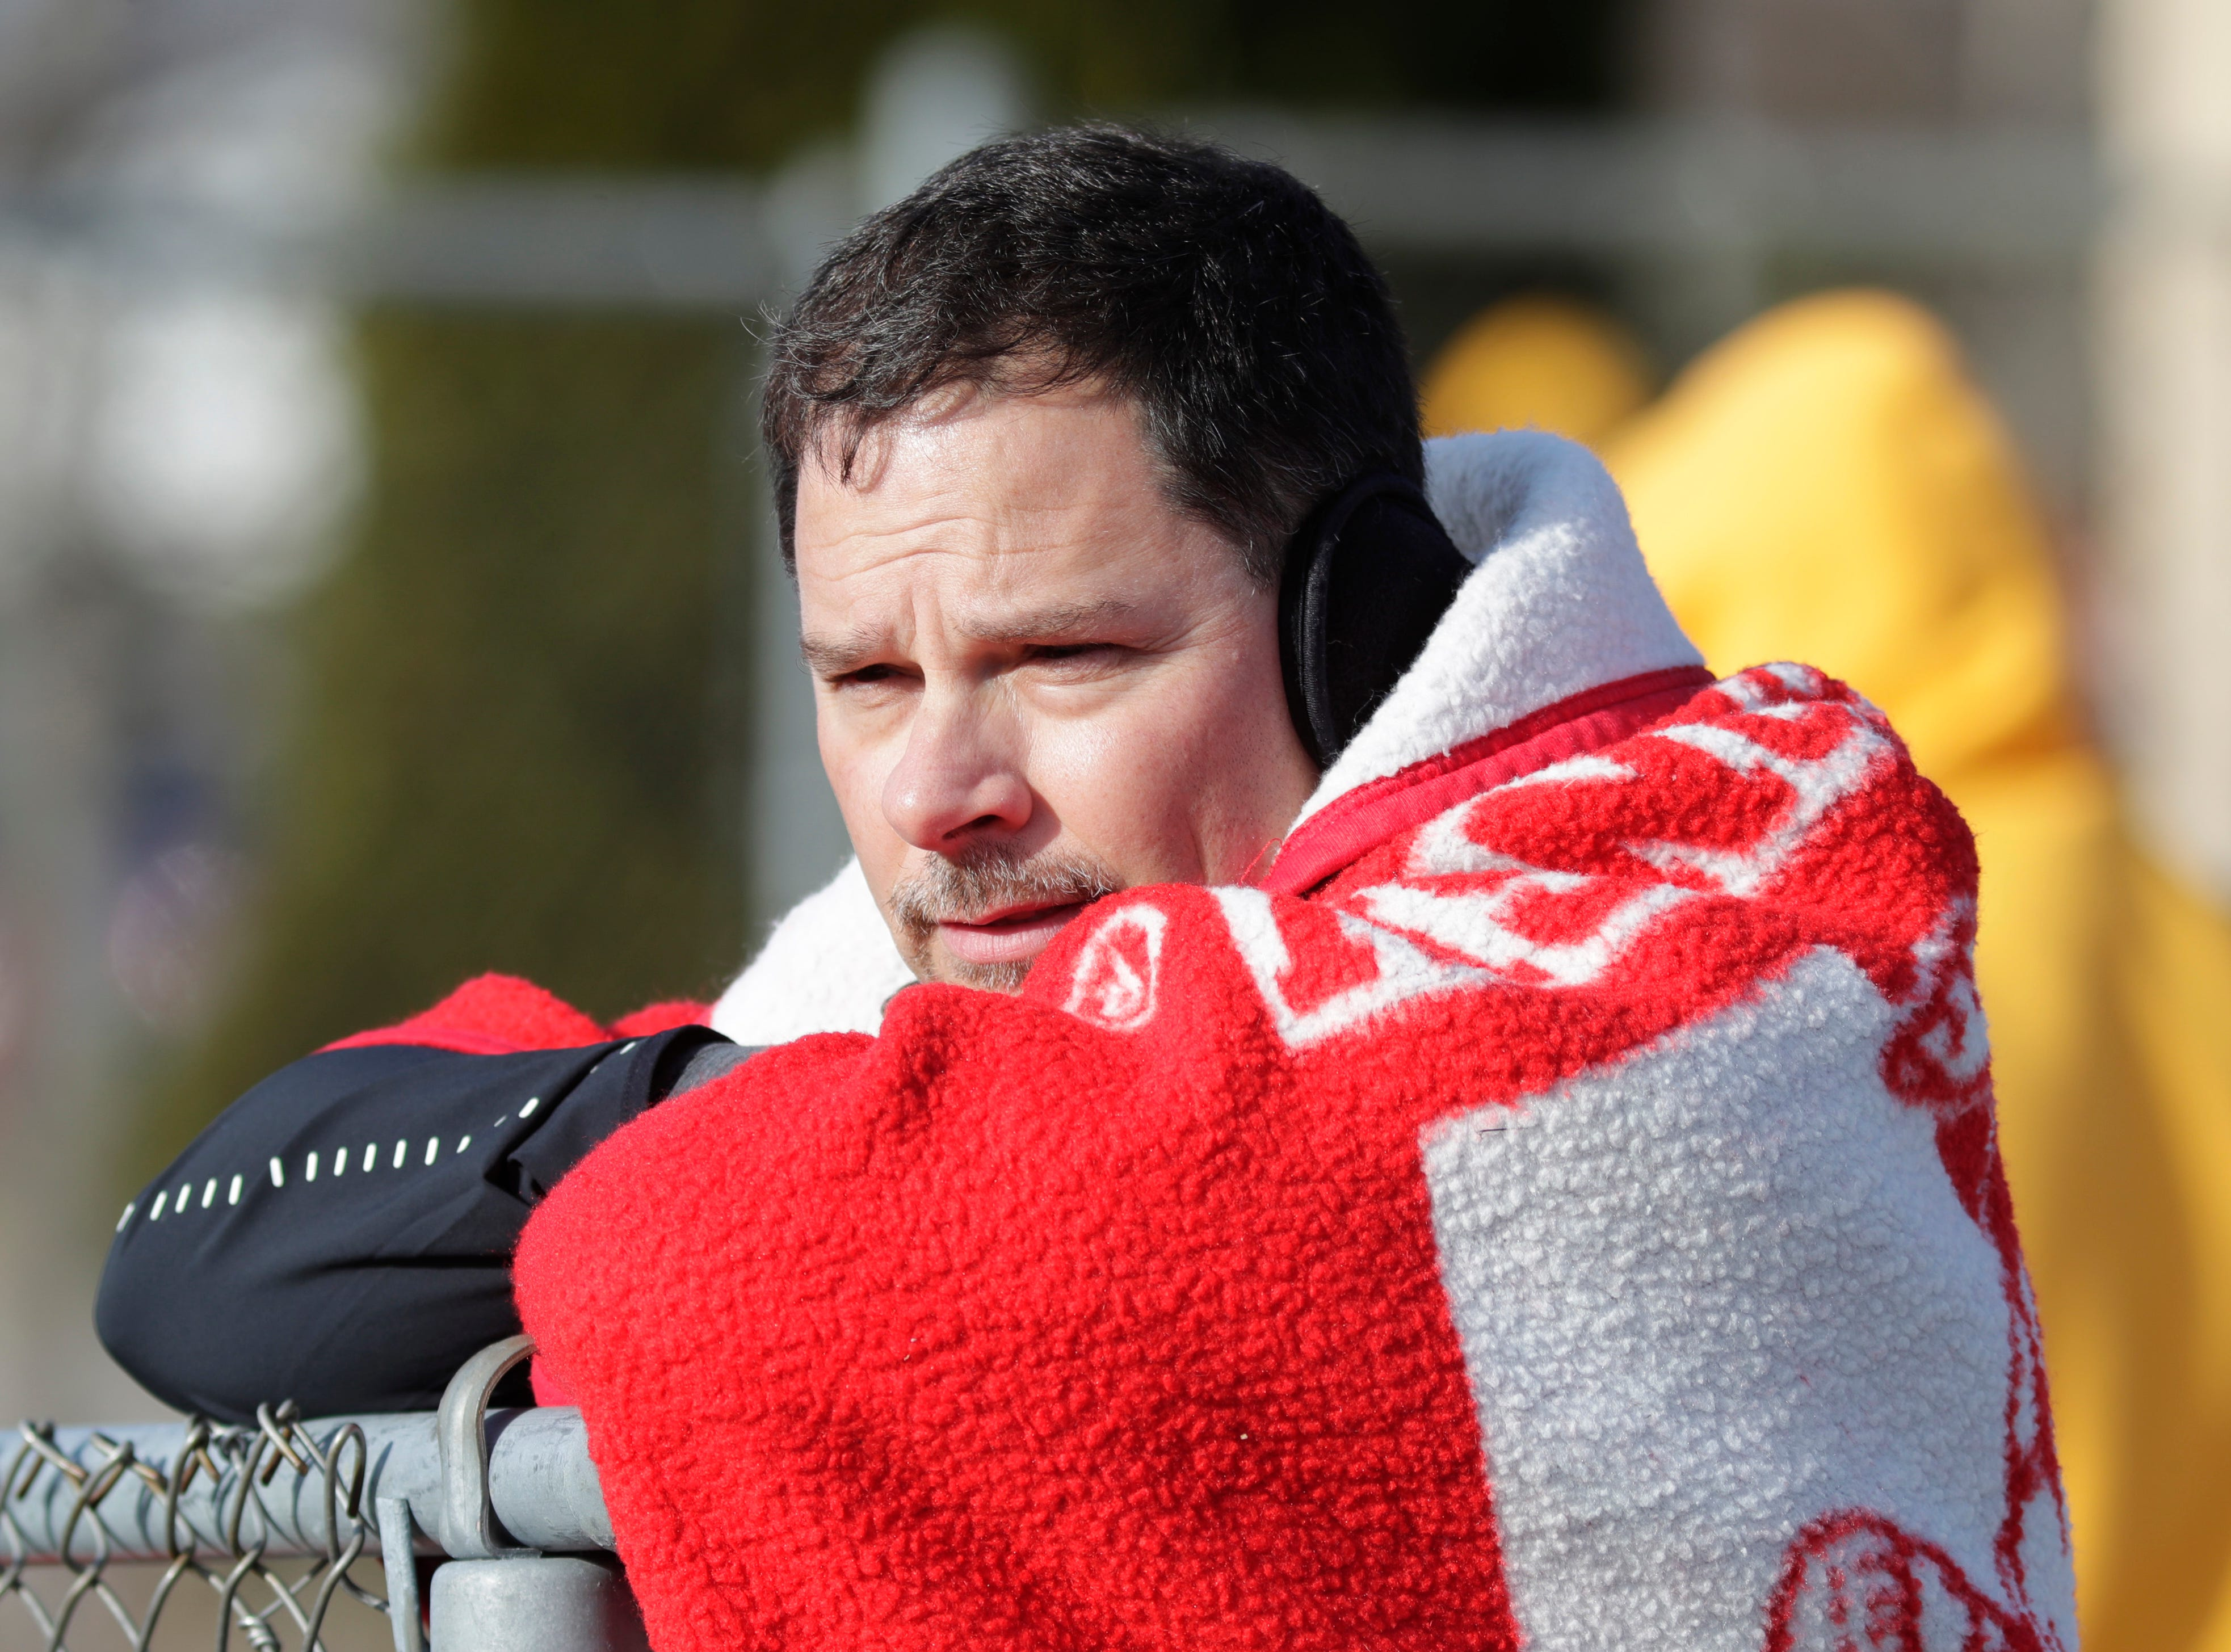 Daniel Bruhm watches action at the Howards Grove track meet, Tuesday, April 9, 2019, in Howards, Wis.